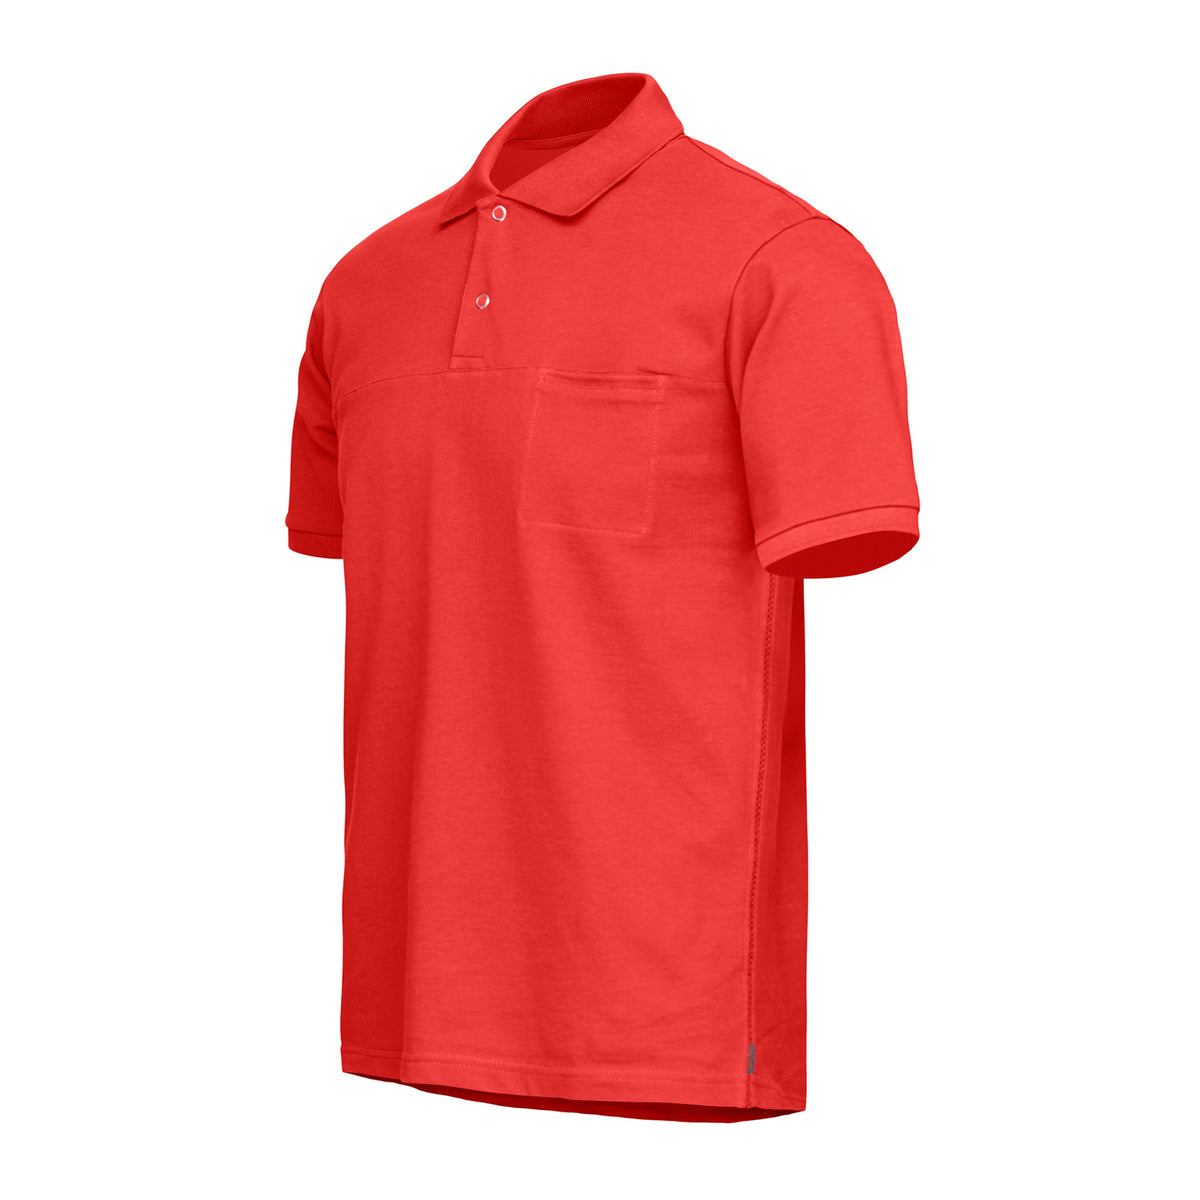 Breeze Polo Shirt - background::white,variant::Red Alert